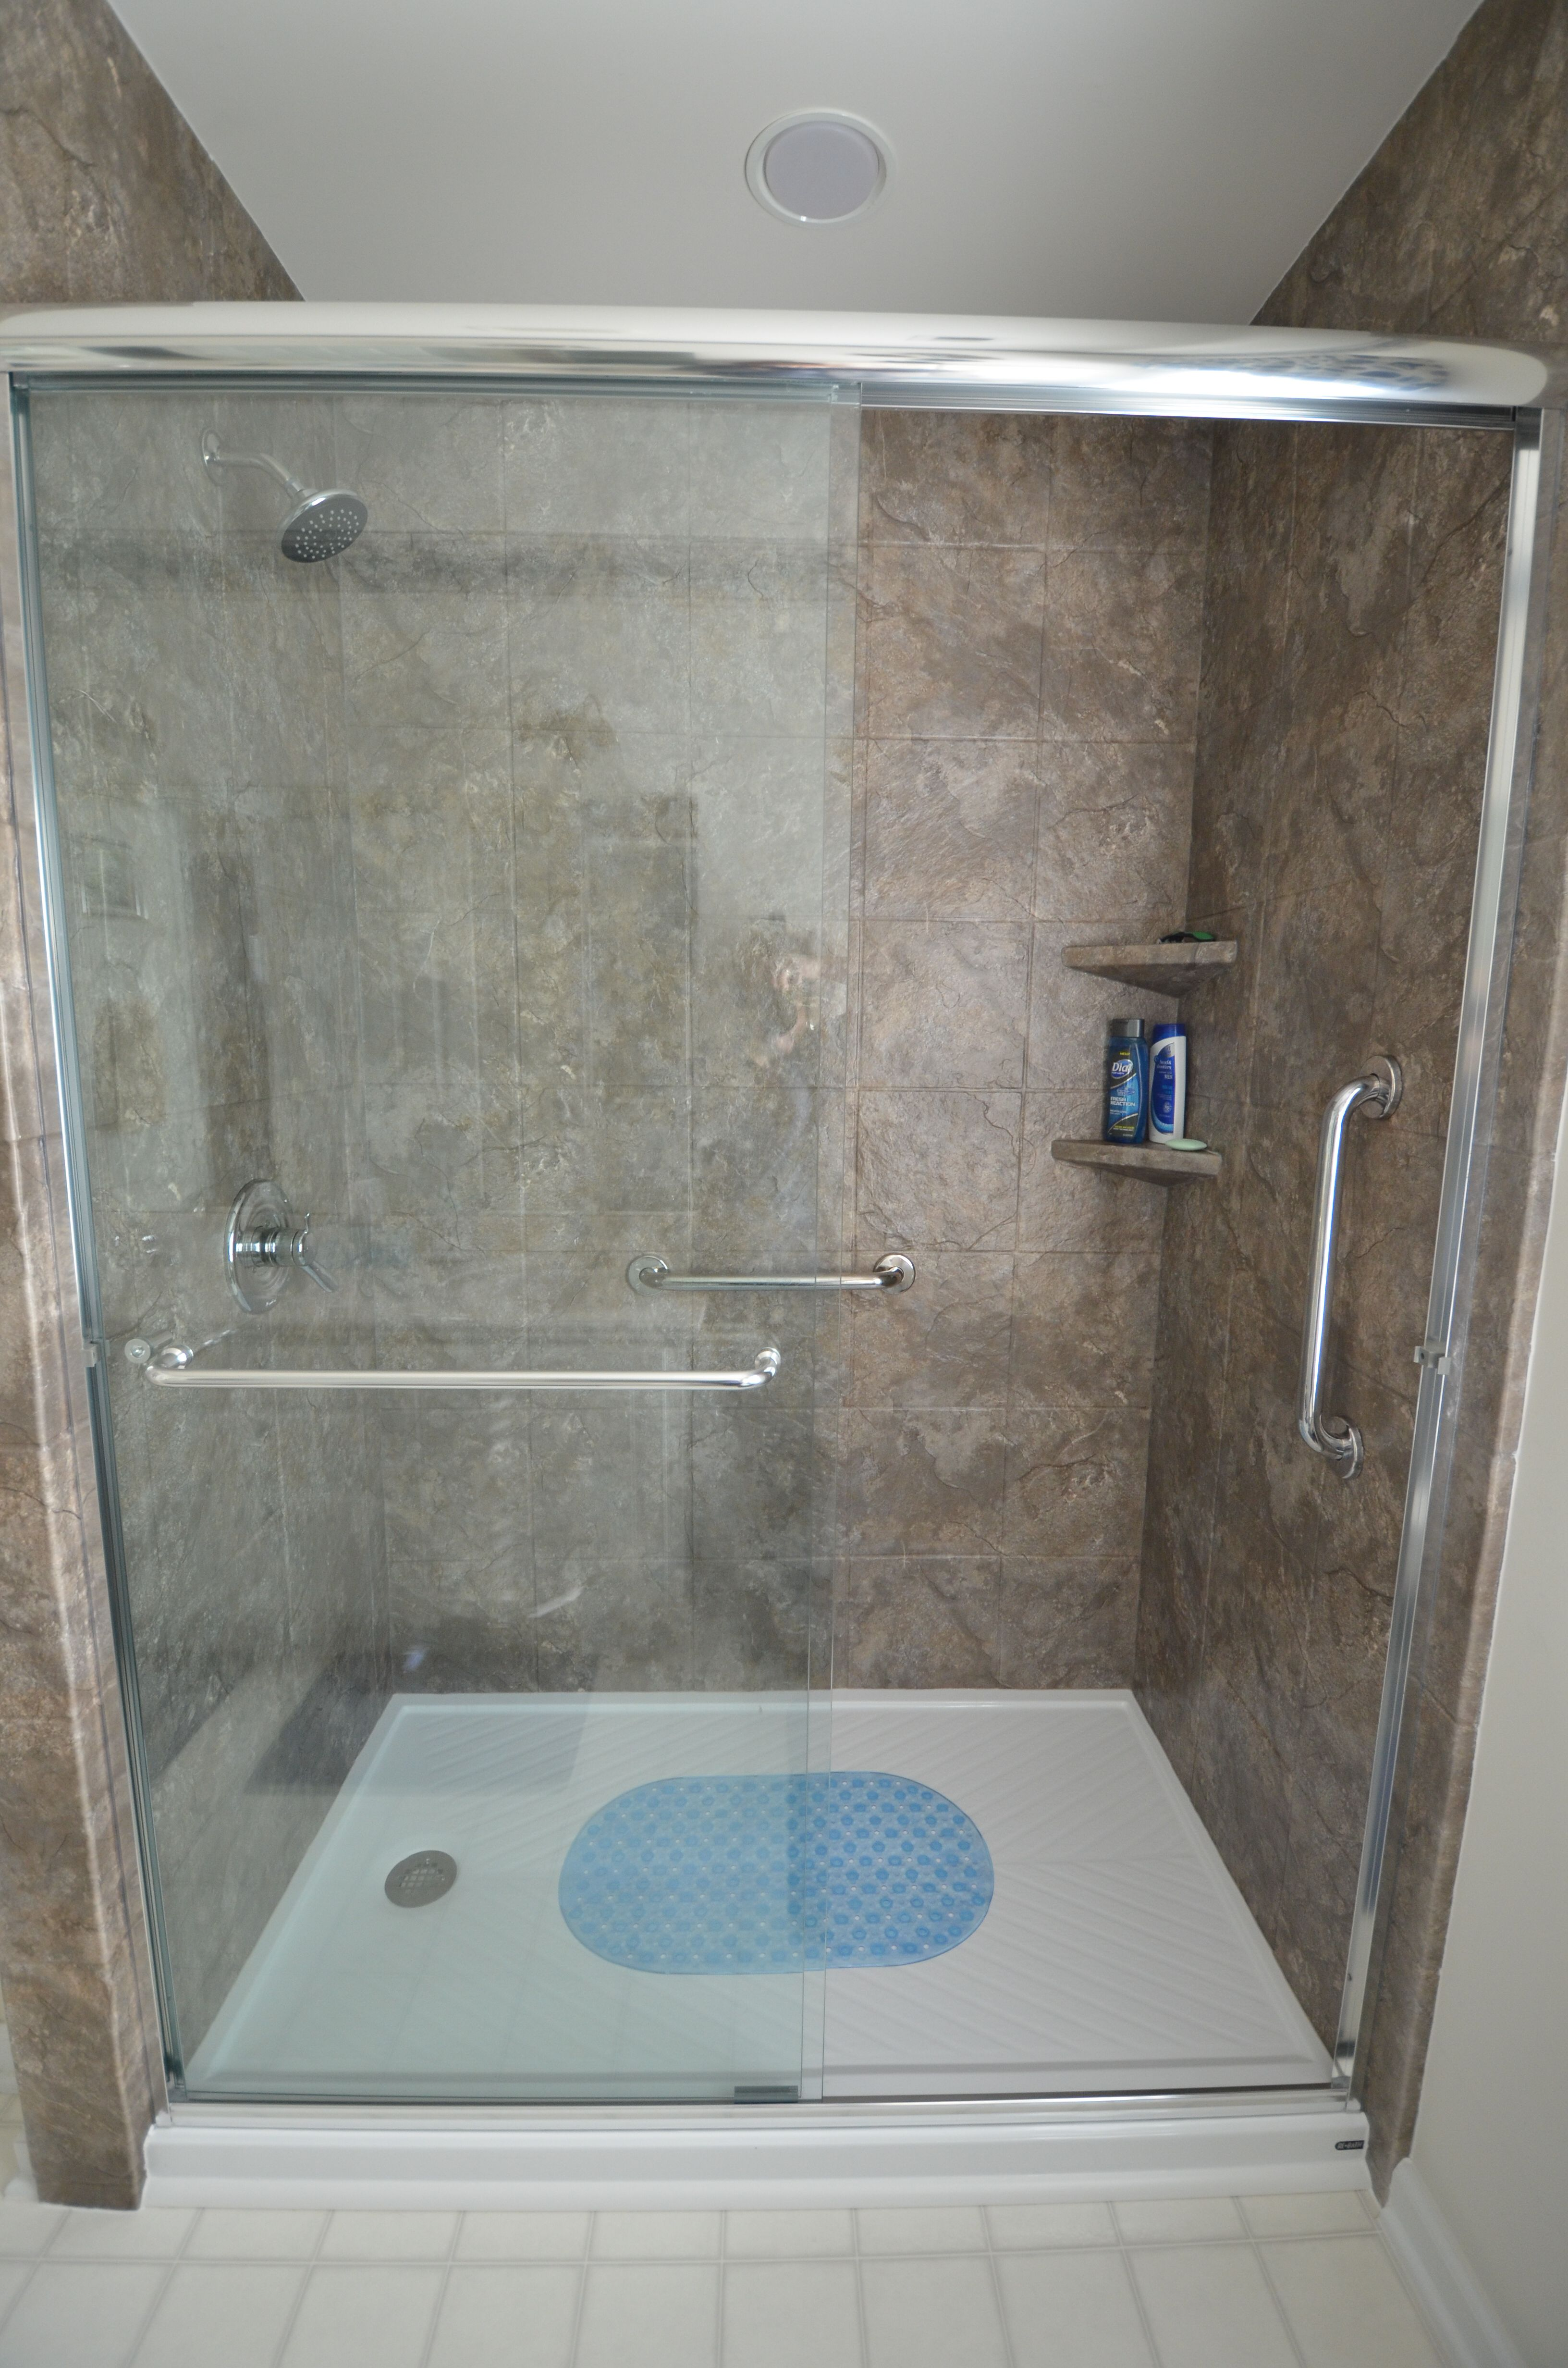 Bathroom Remodel from Re-Bath - oversized tile, low threshold shower ...